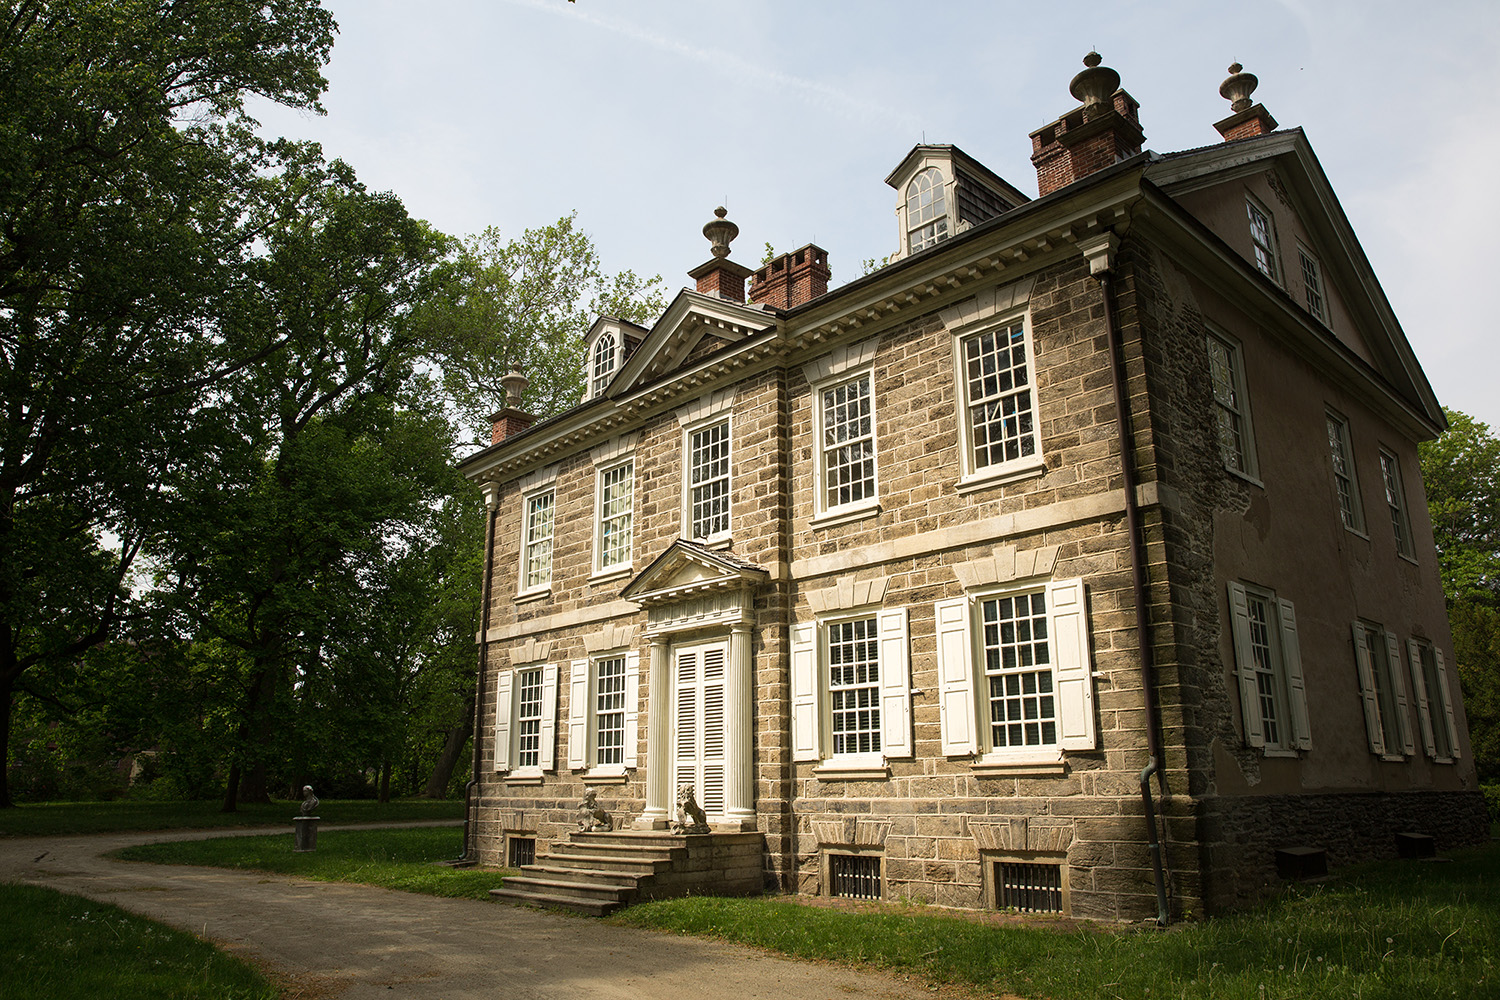 The Chew House (Clivedon) as seen today.  This stately home was at the center of the Battle of Germantown.